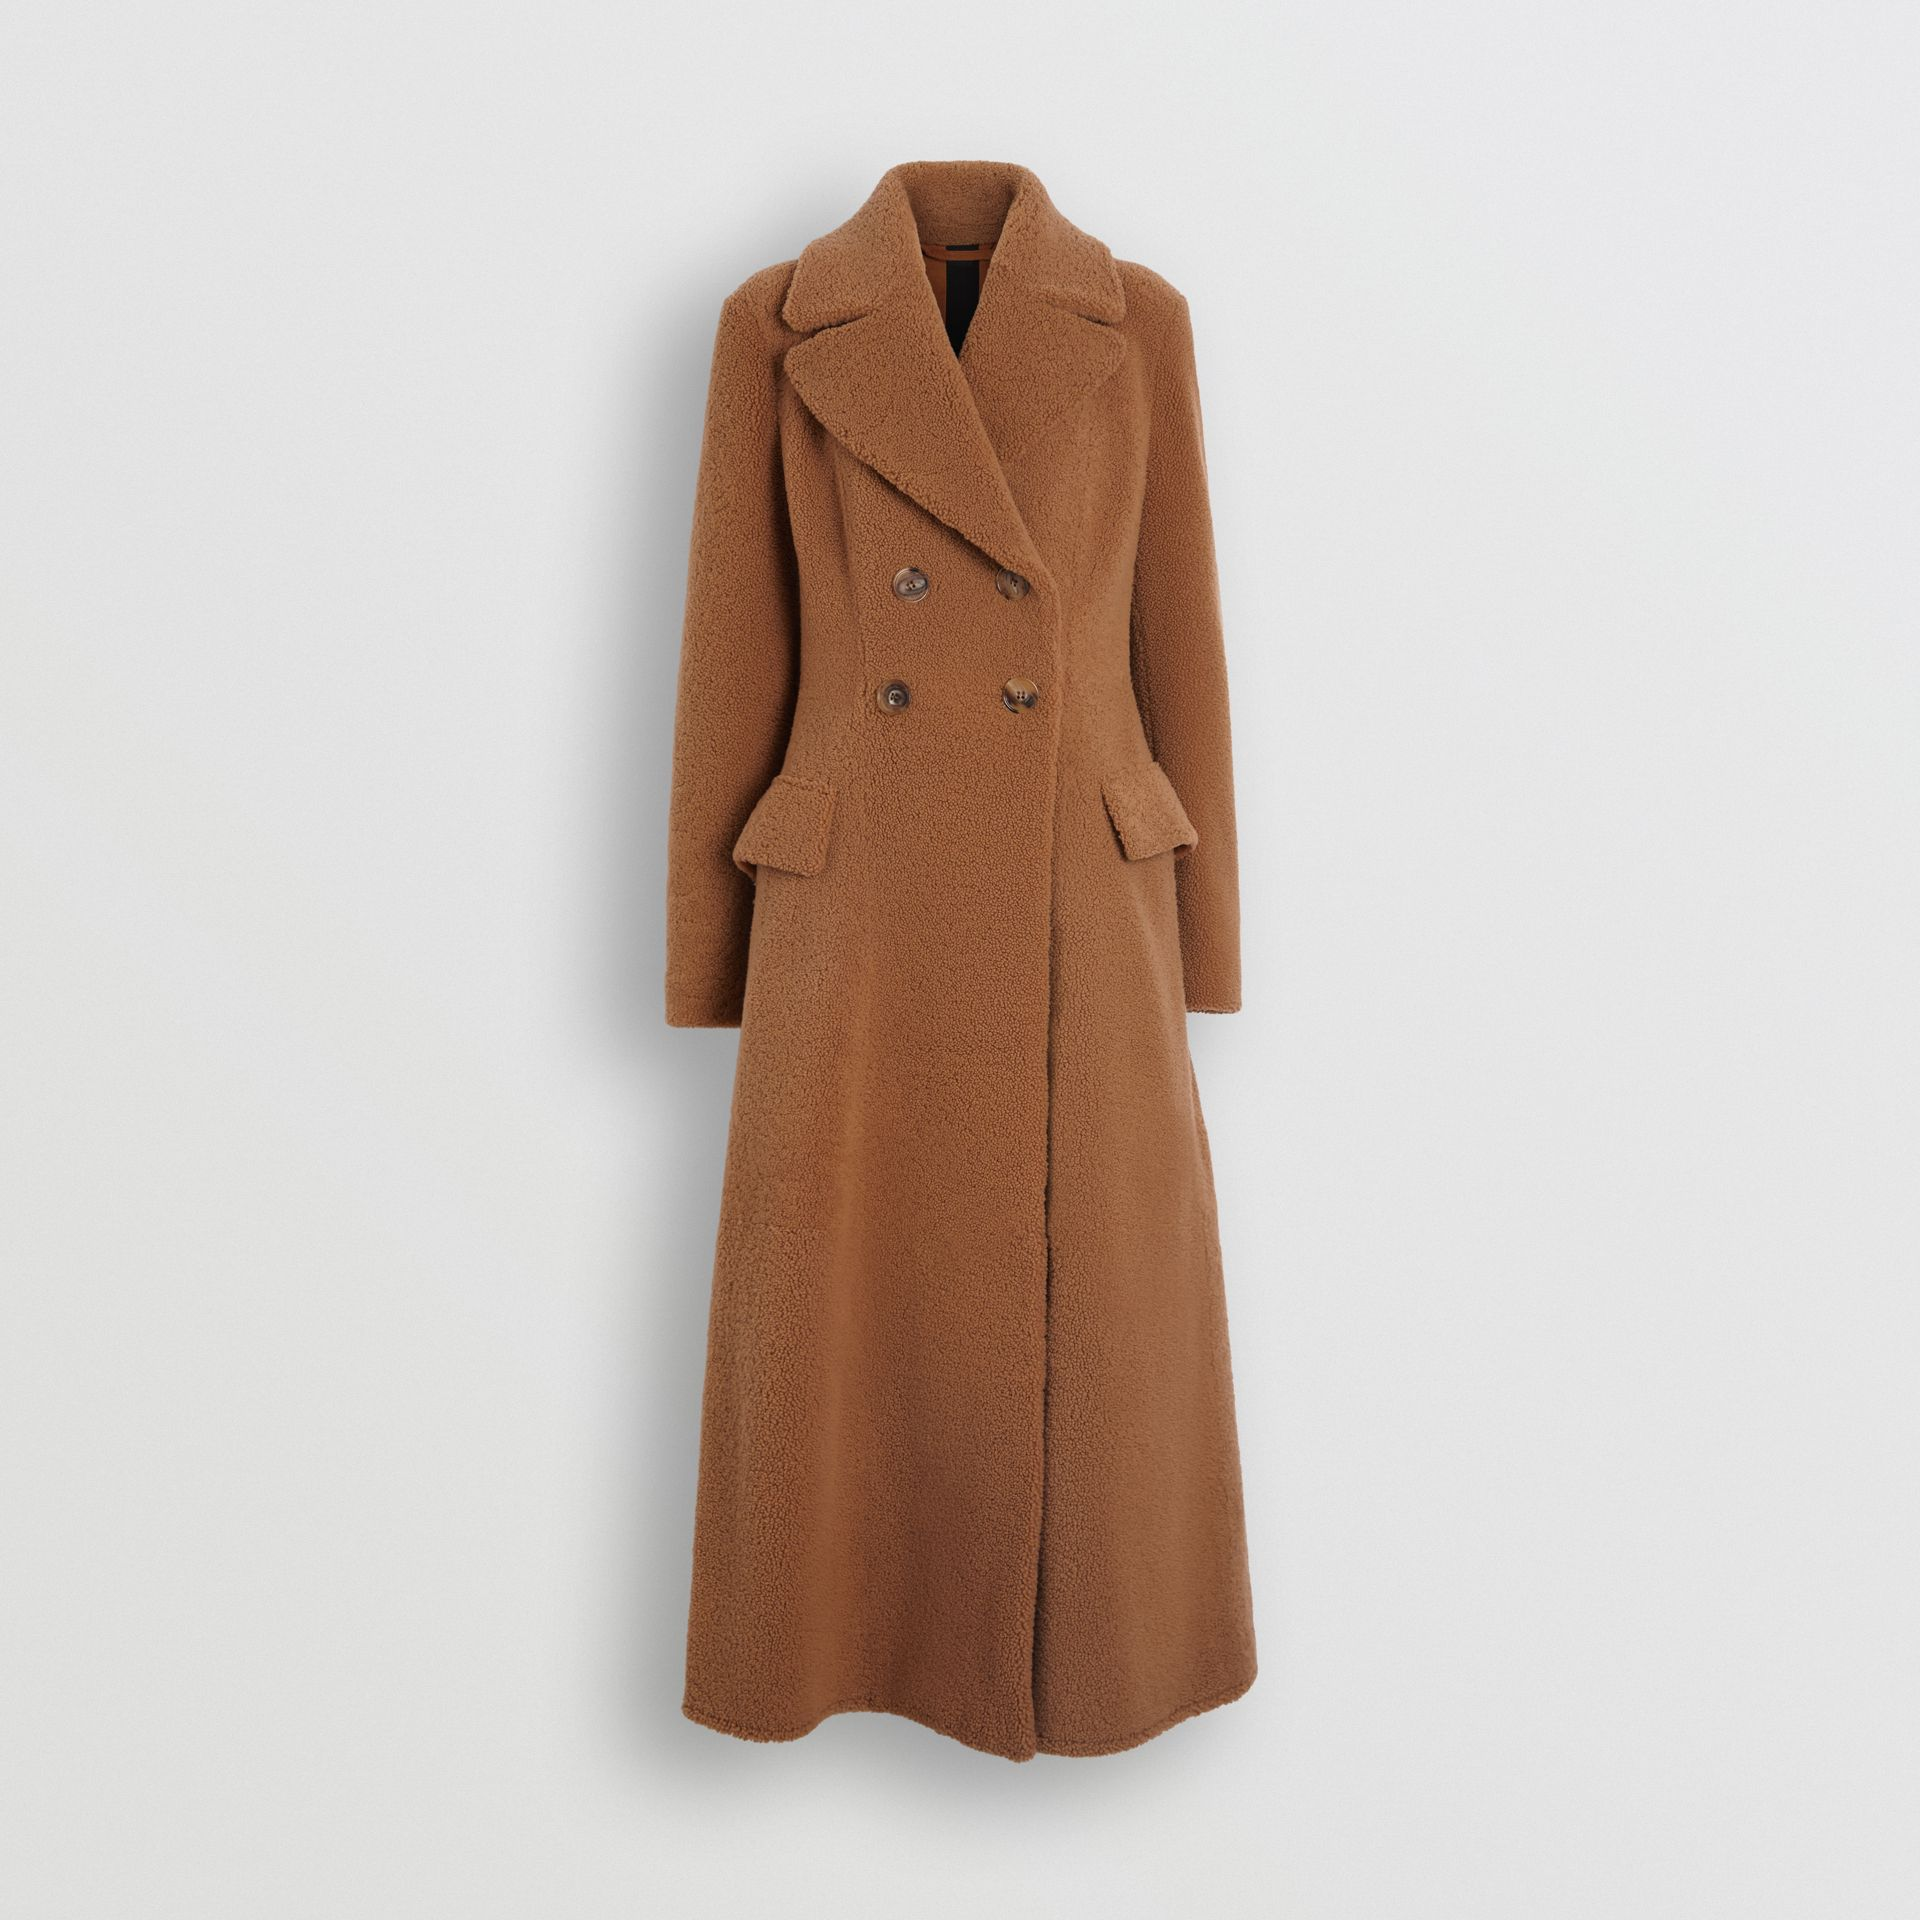 Shearling Tailored Coat in Caramel - Women | Burberry United Kingdom - gallery image 3